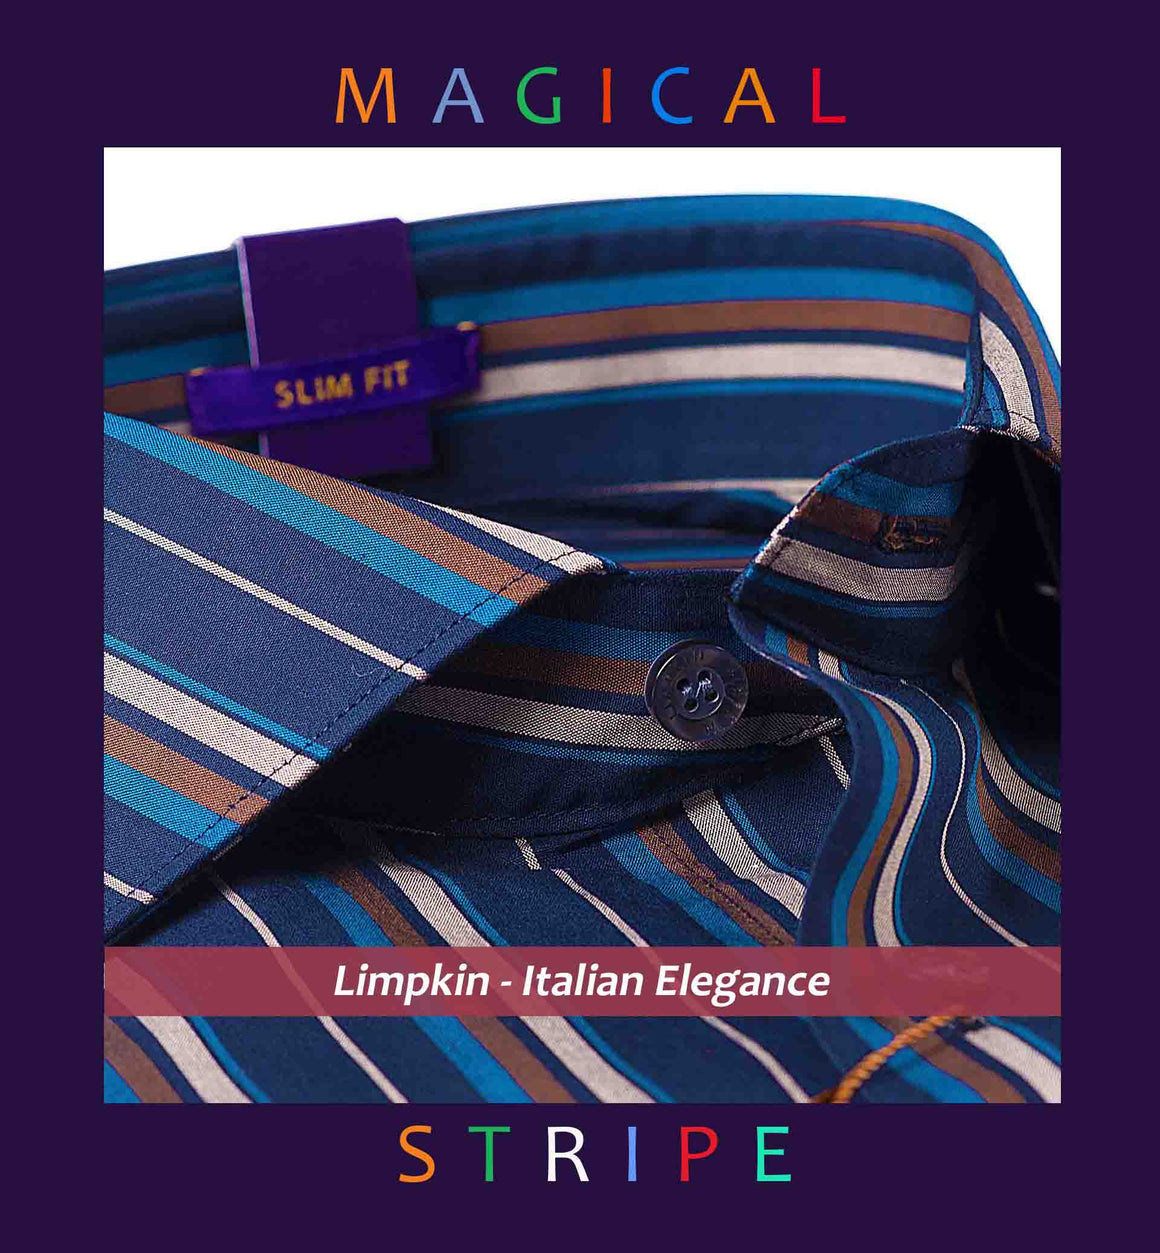 OMAHA- DEEP NAVY & BEIGE MAGICAL STRIPE